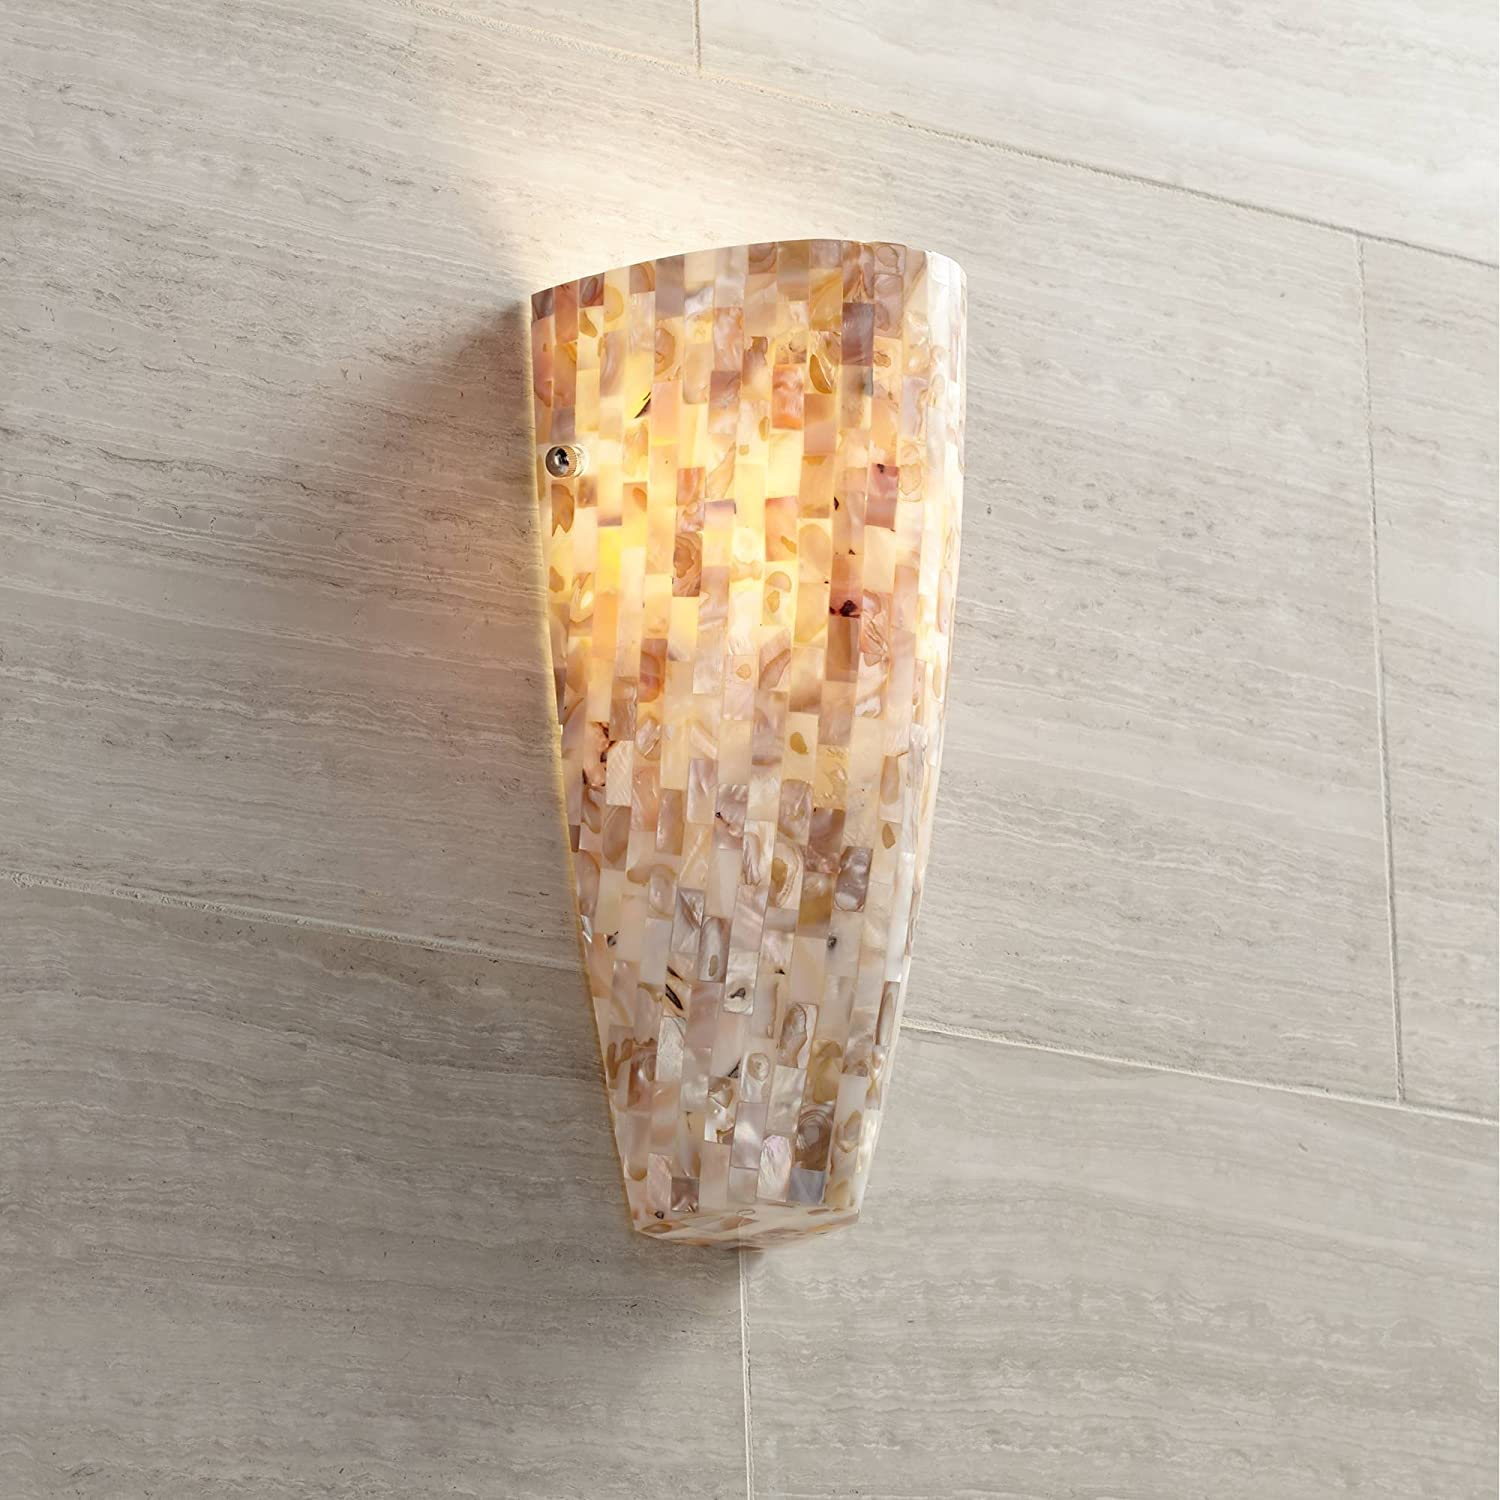 """Mosaic Modern Wall Light Sconce Mosaic Mother of Pearl Glass Hardwired 11 3/4"""" High Fixture for Bedroom Bathroom Hallway - Possini Euro Design"""